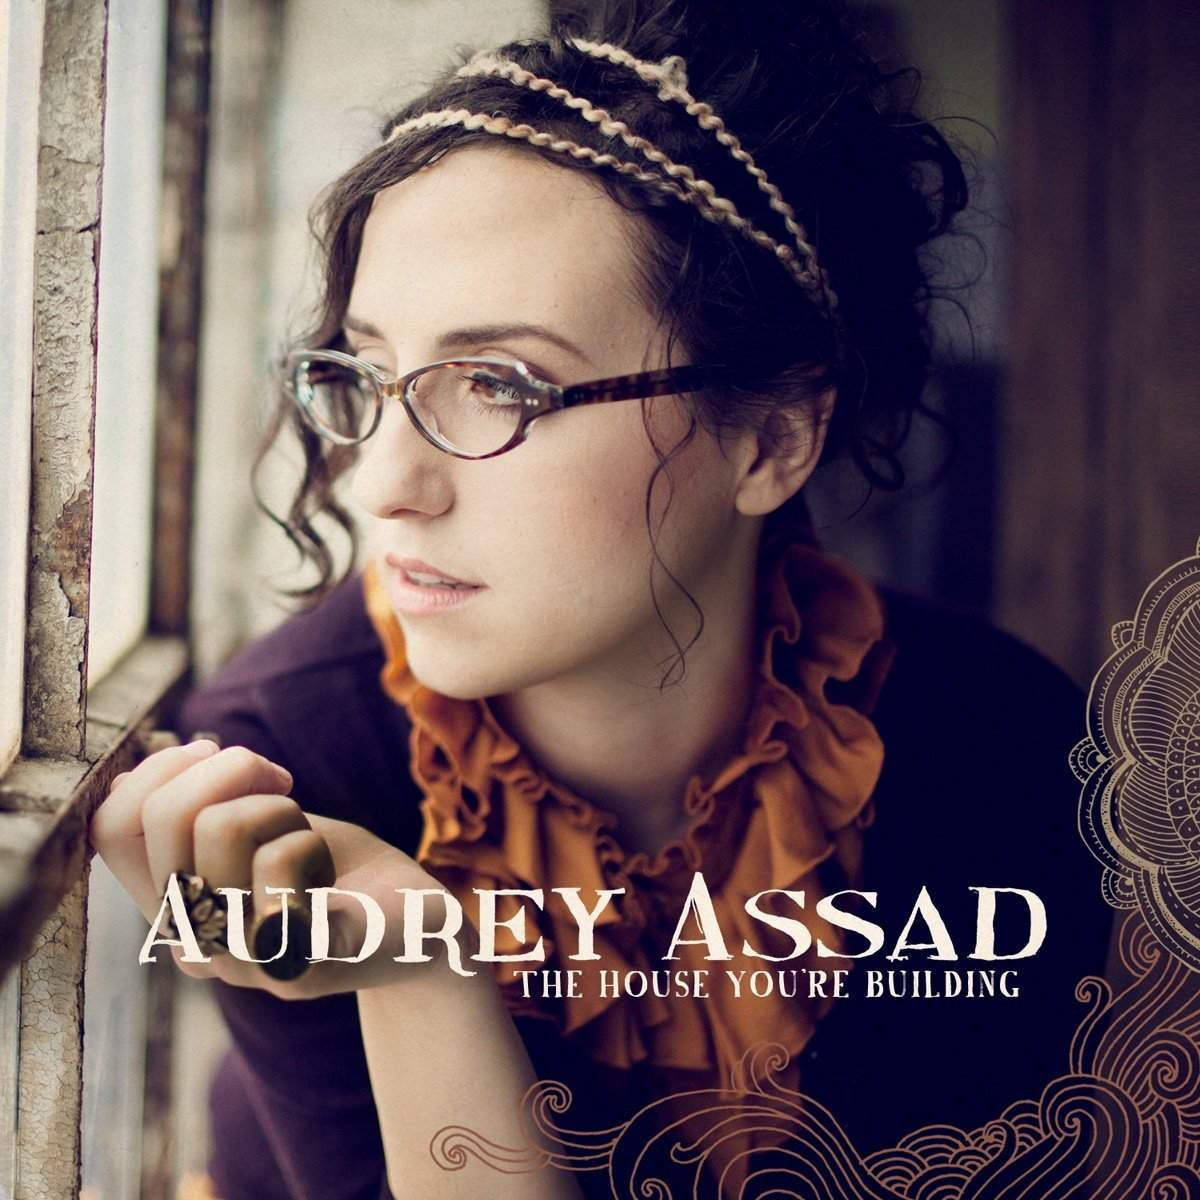 audrey-assad-this-house-you're-building